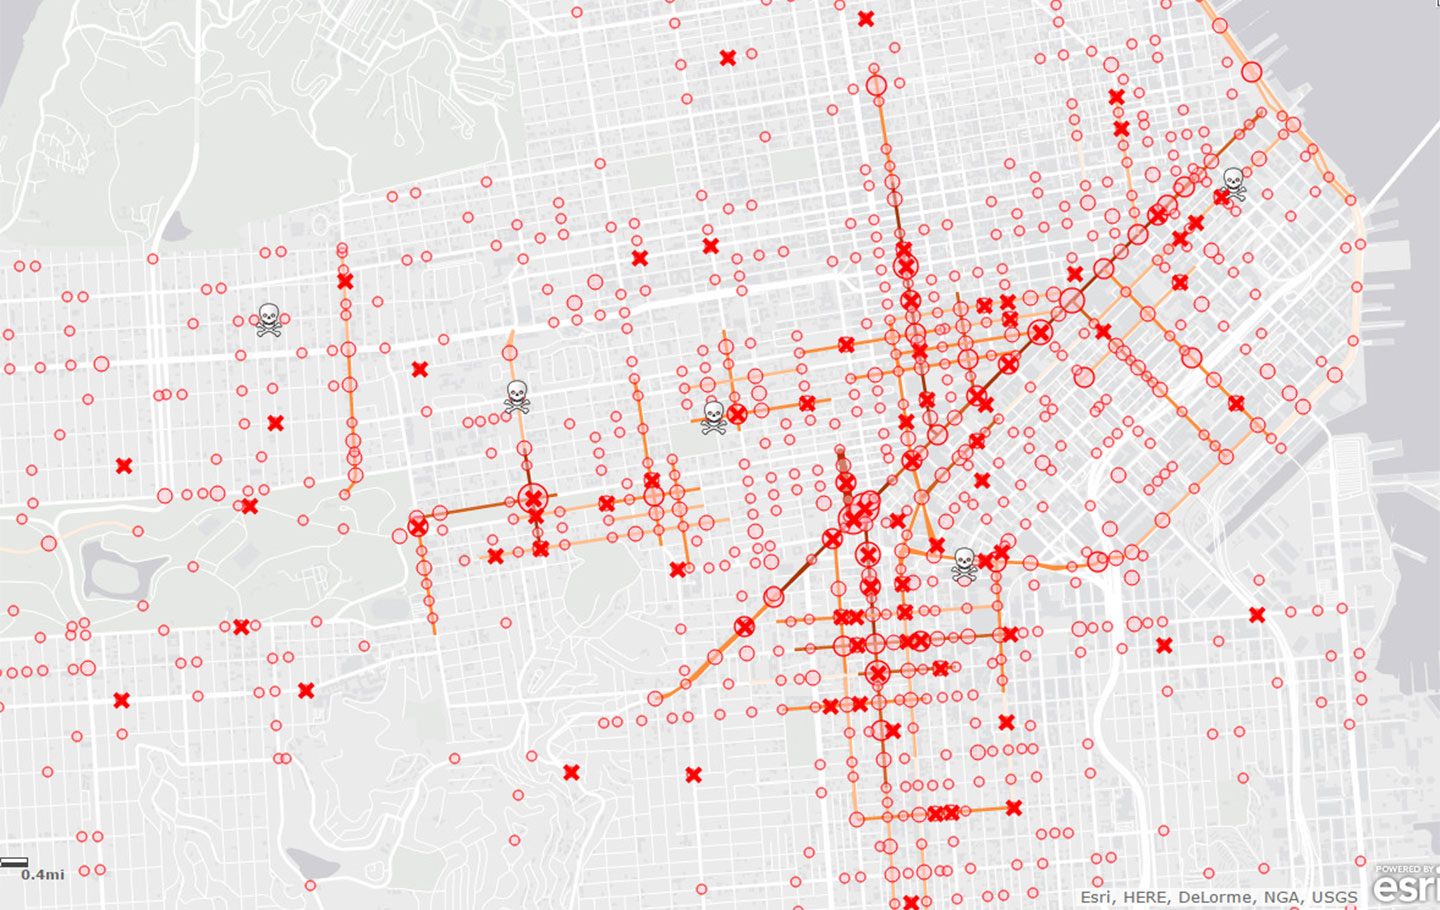 Map of cycling injuries and deaths in San Francisco from 2007-11. Click on map for interactive version.